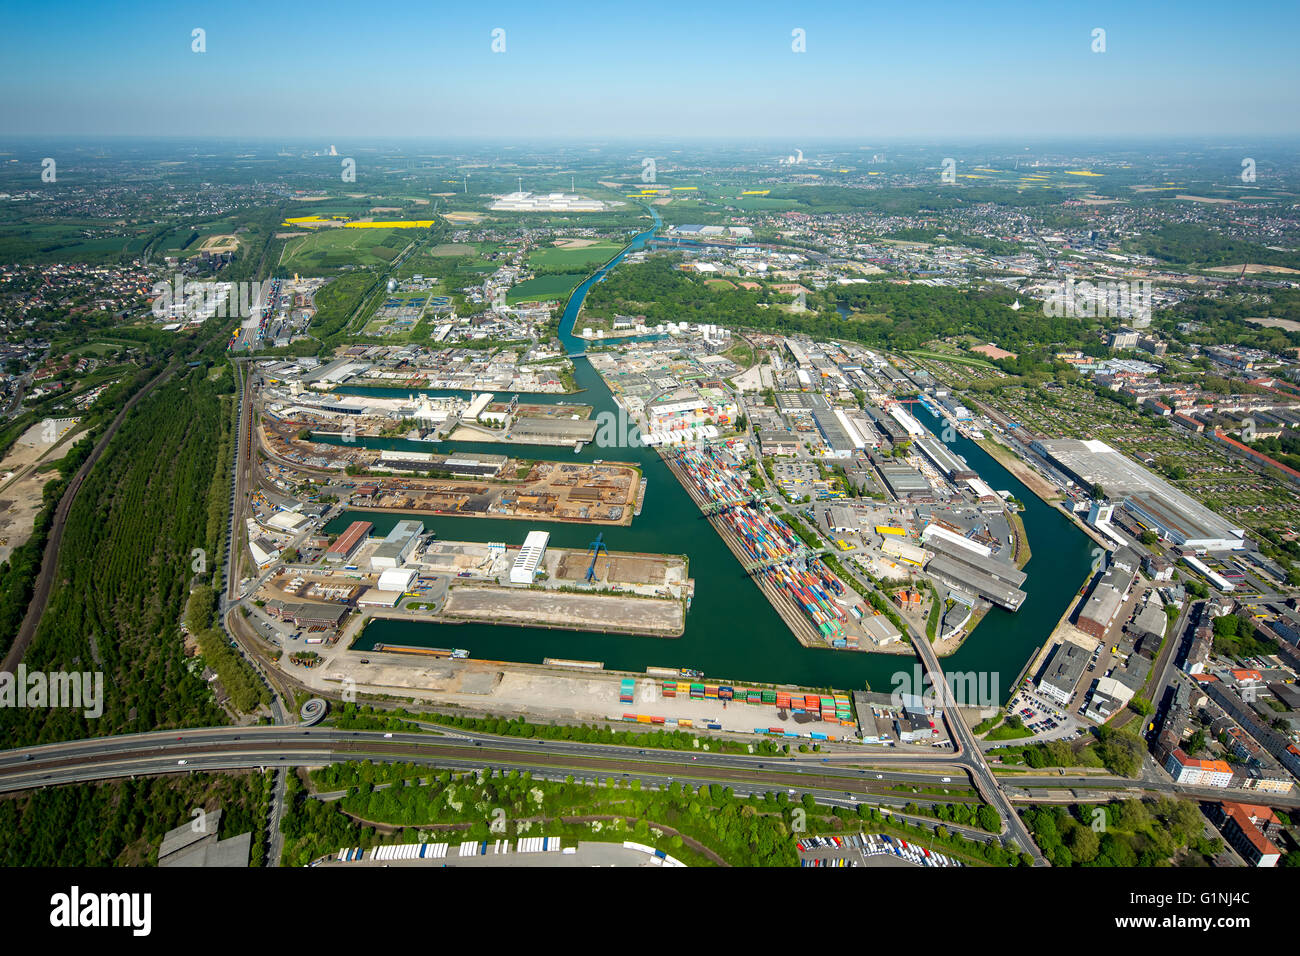 Aerial view, Dortmunder port, inland port, Dortmund-Ems Canal, container port, the Port of Dortmund AG, Old Port Stock Photo